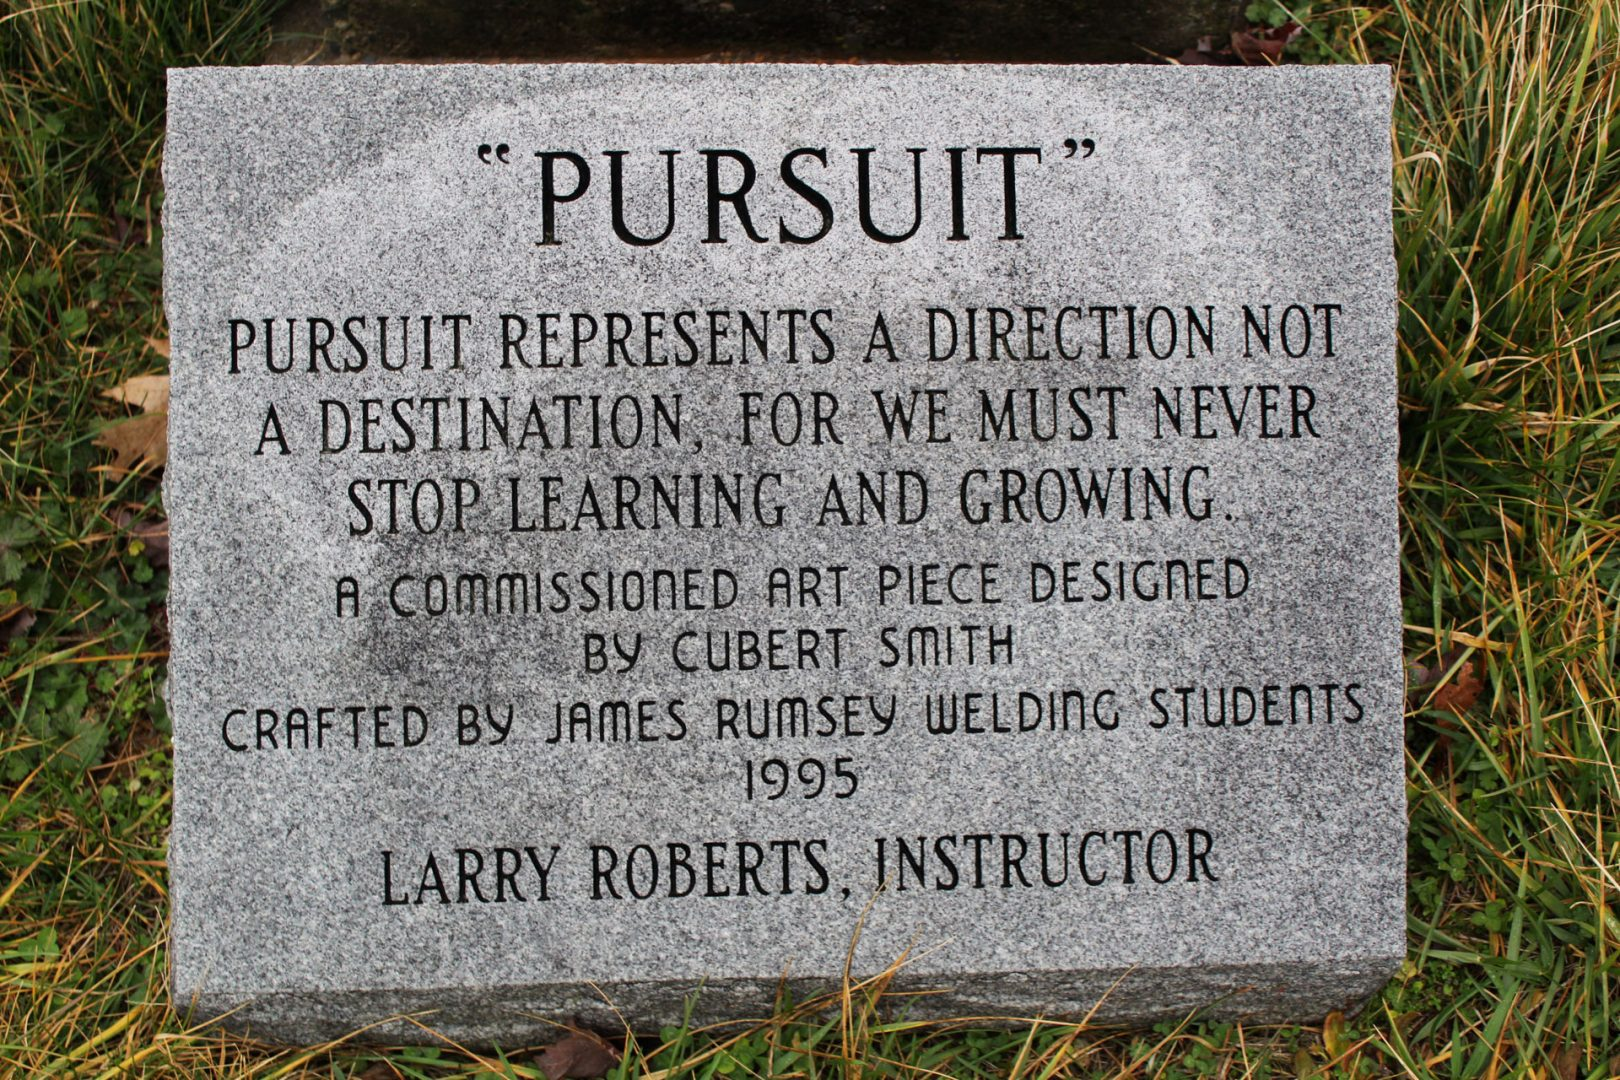 Pursuit represents a direction not a destination. For we must never stop learning and growing.